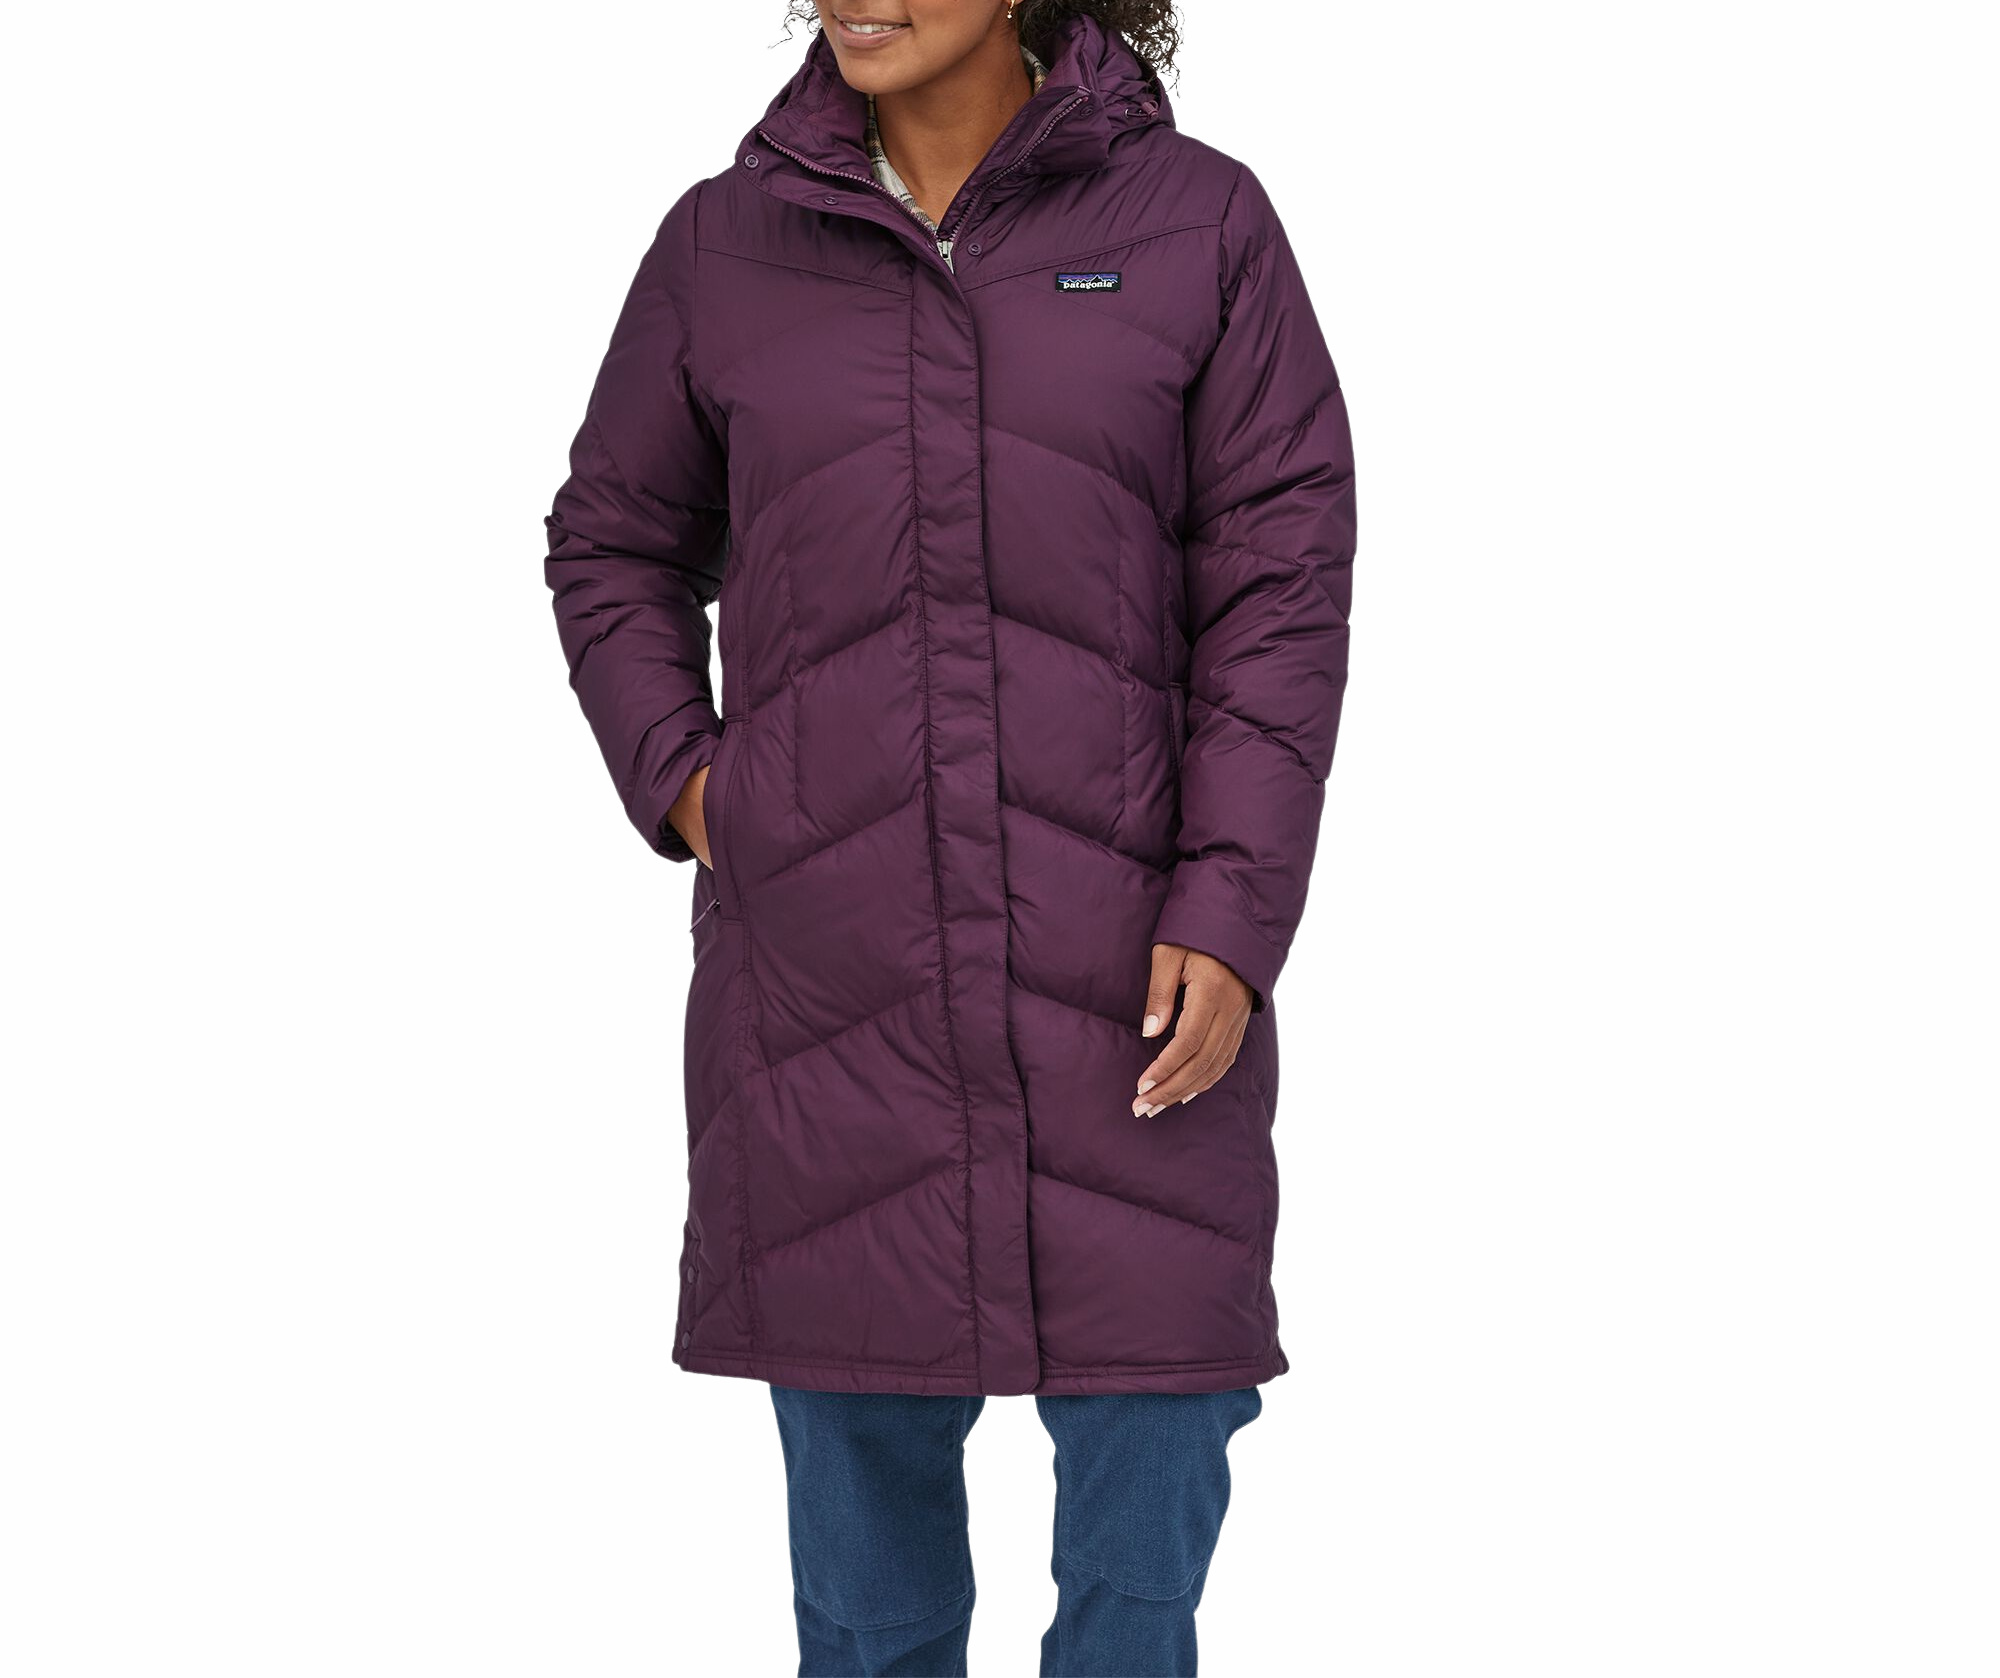 patagonia-down-with-it-parka-women's